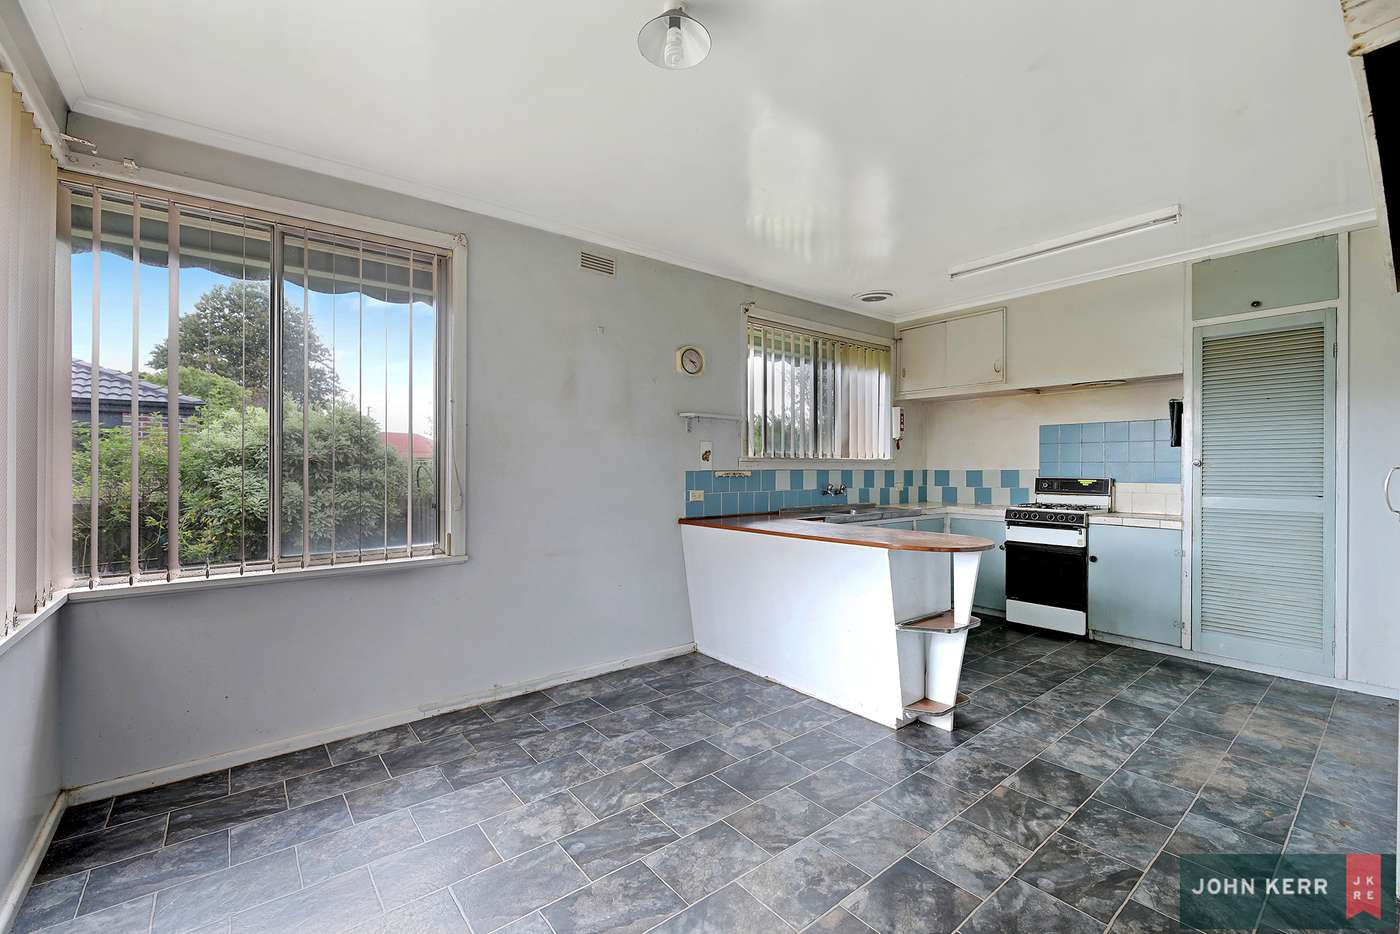 Fifth view of Homely house listing, 64 Contour Road, Trafalgar VIC 3824